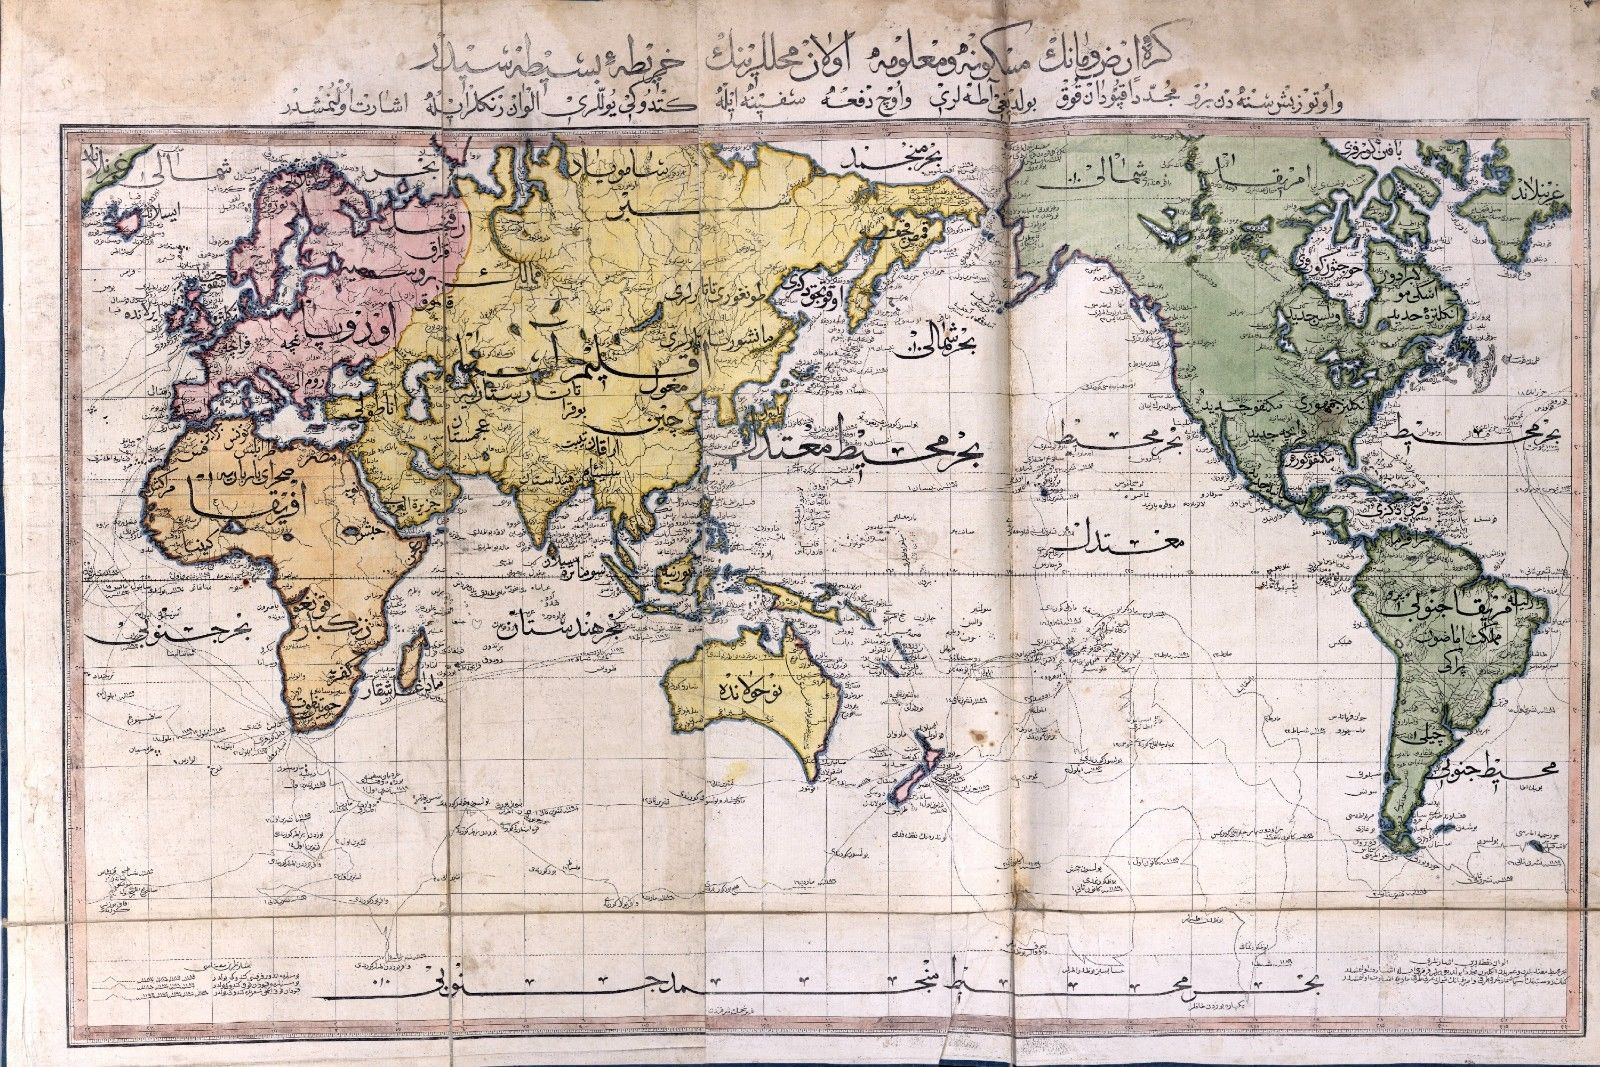 Modern Day World Map.Ottoman Map Of The World 1803 To Check Later Pinterest Map